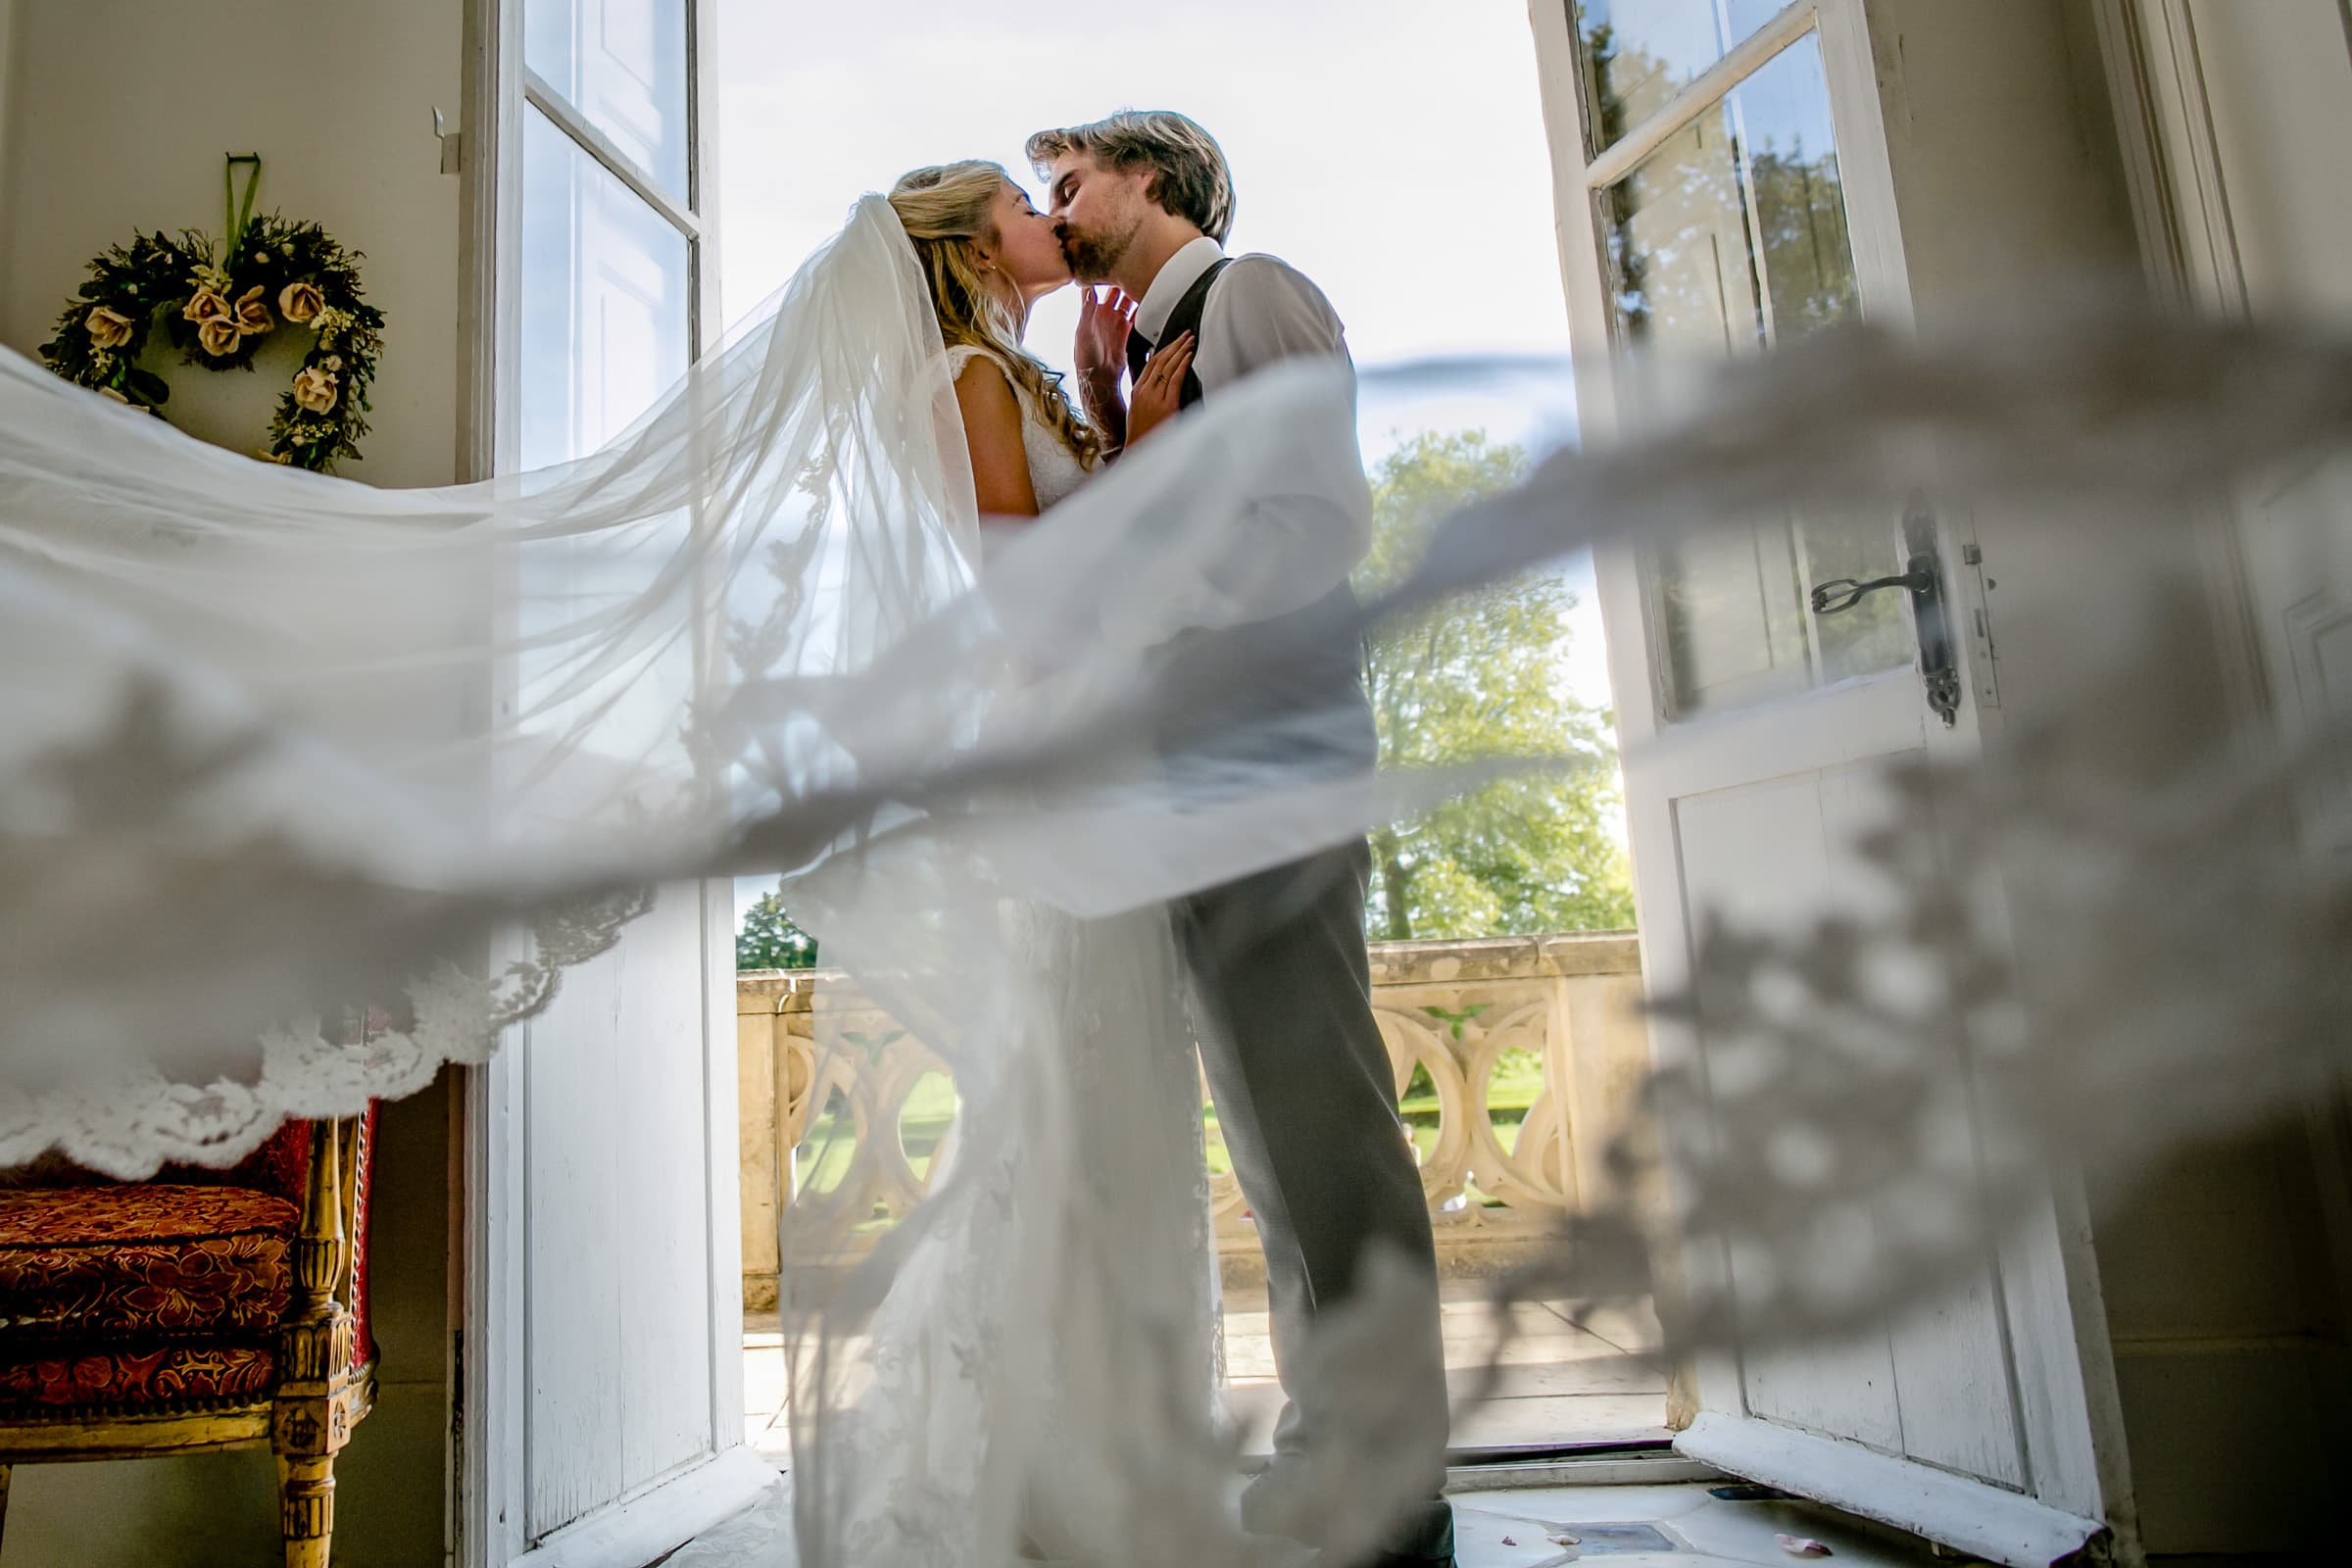 Bride and groom embracing during a French Chateau wedding in Normandy, France